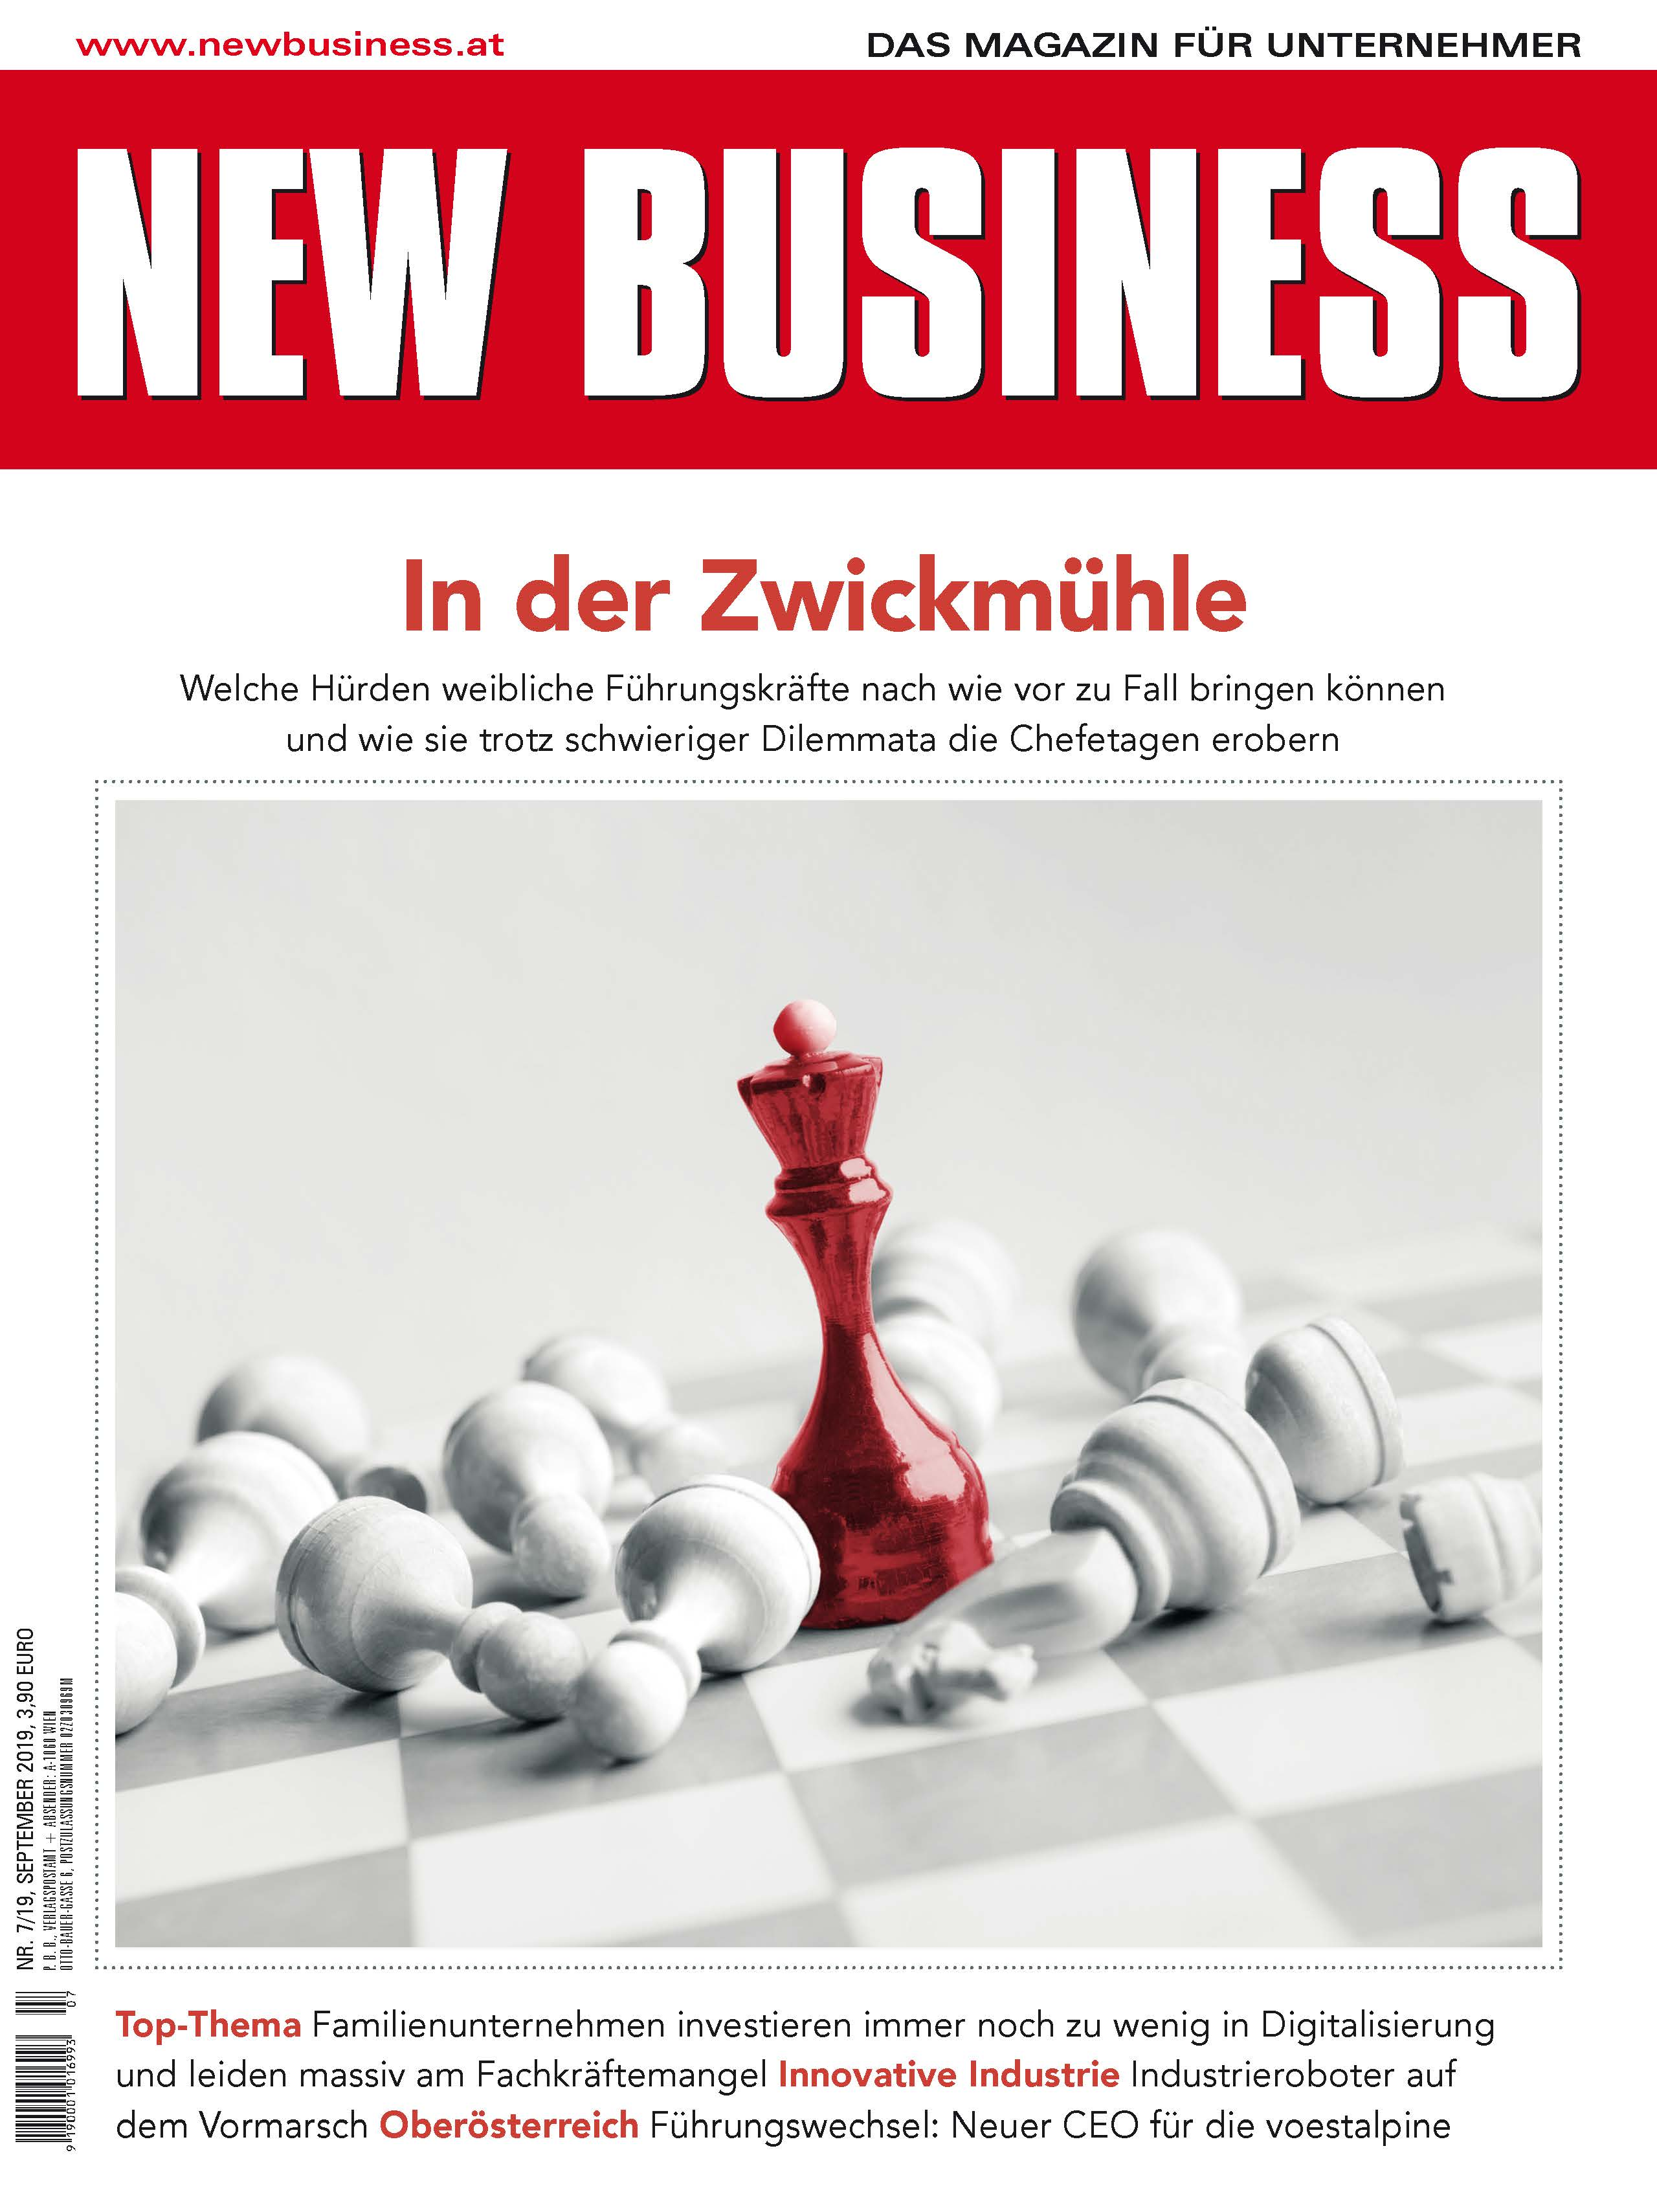 Cover: NEW BUSINESS - NR. 7, SEPTEMBER 2019